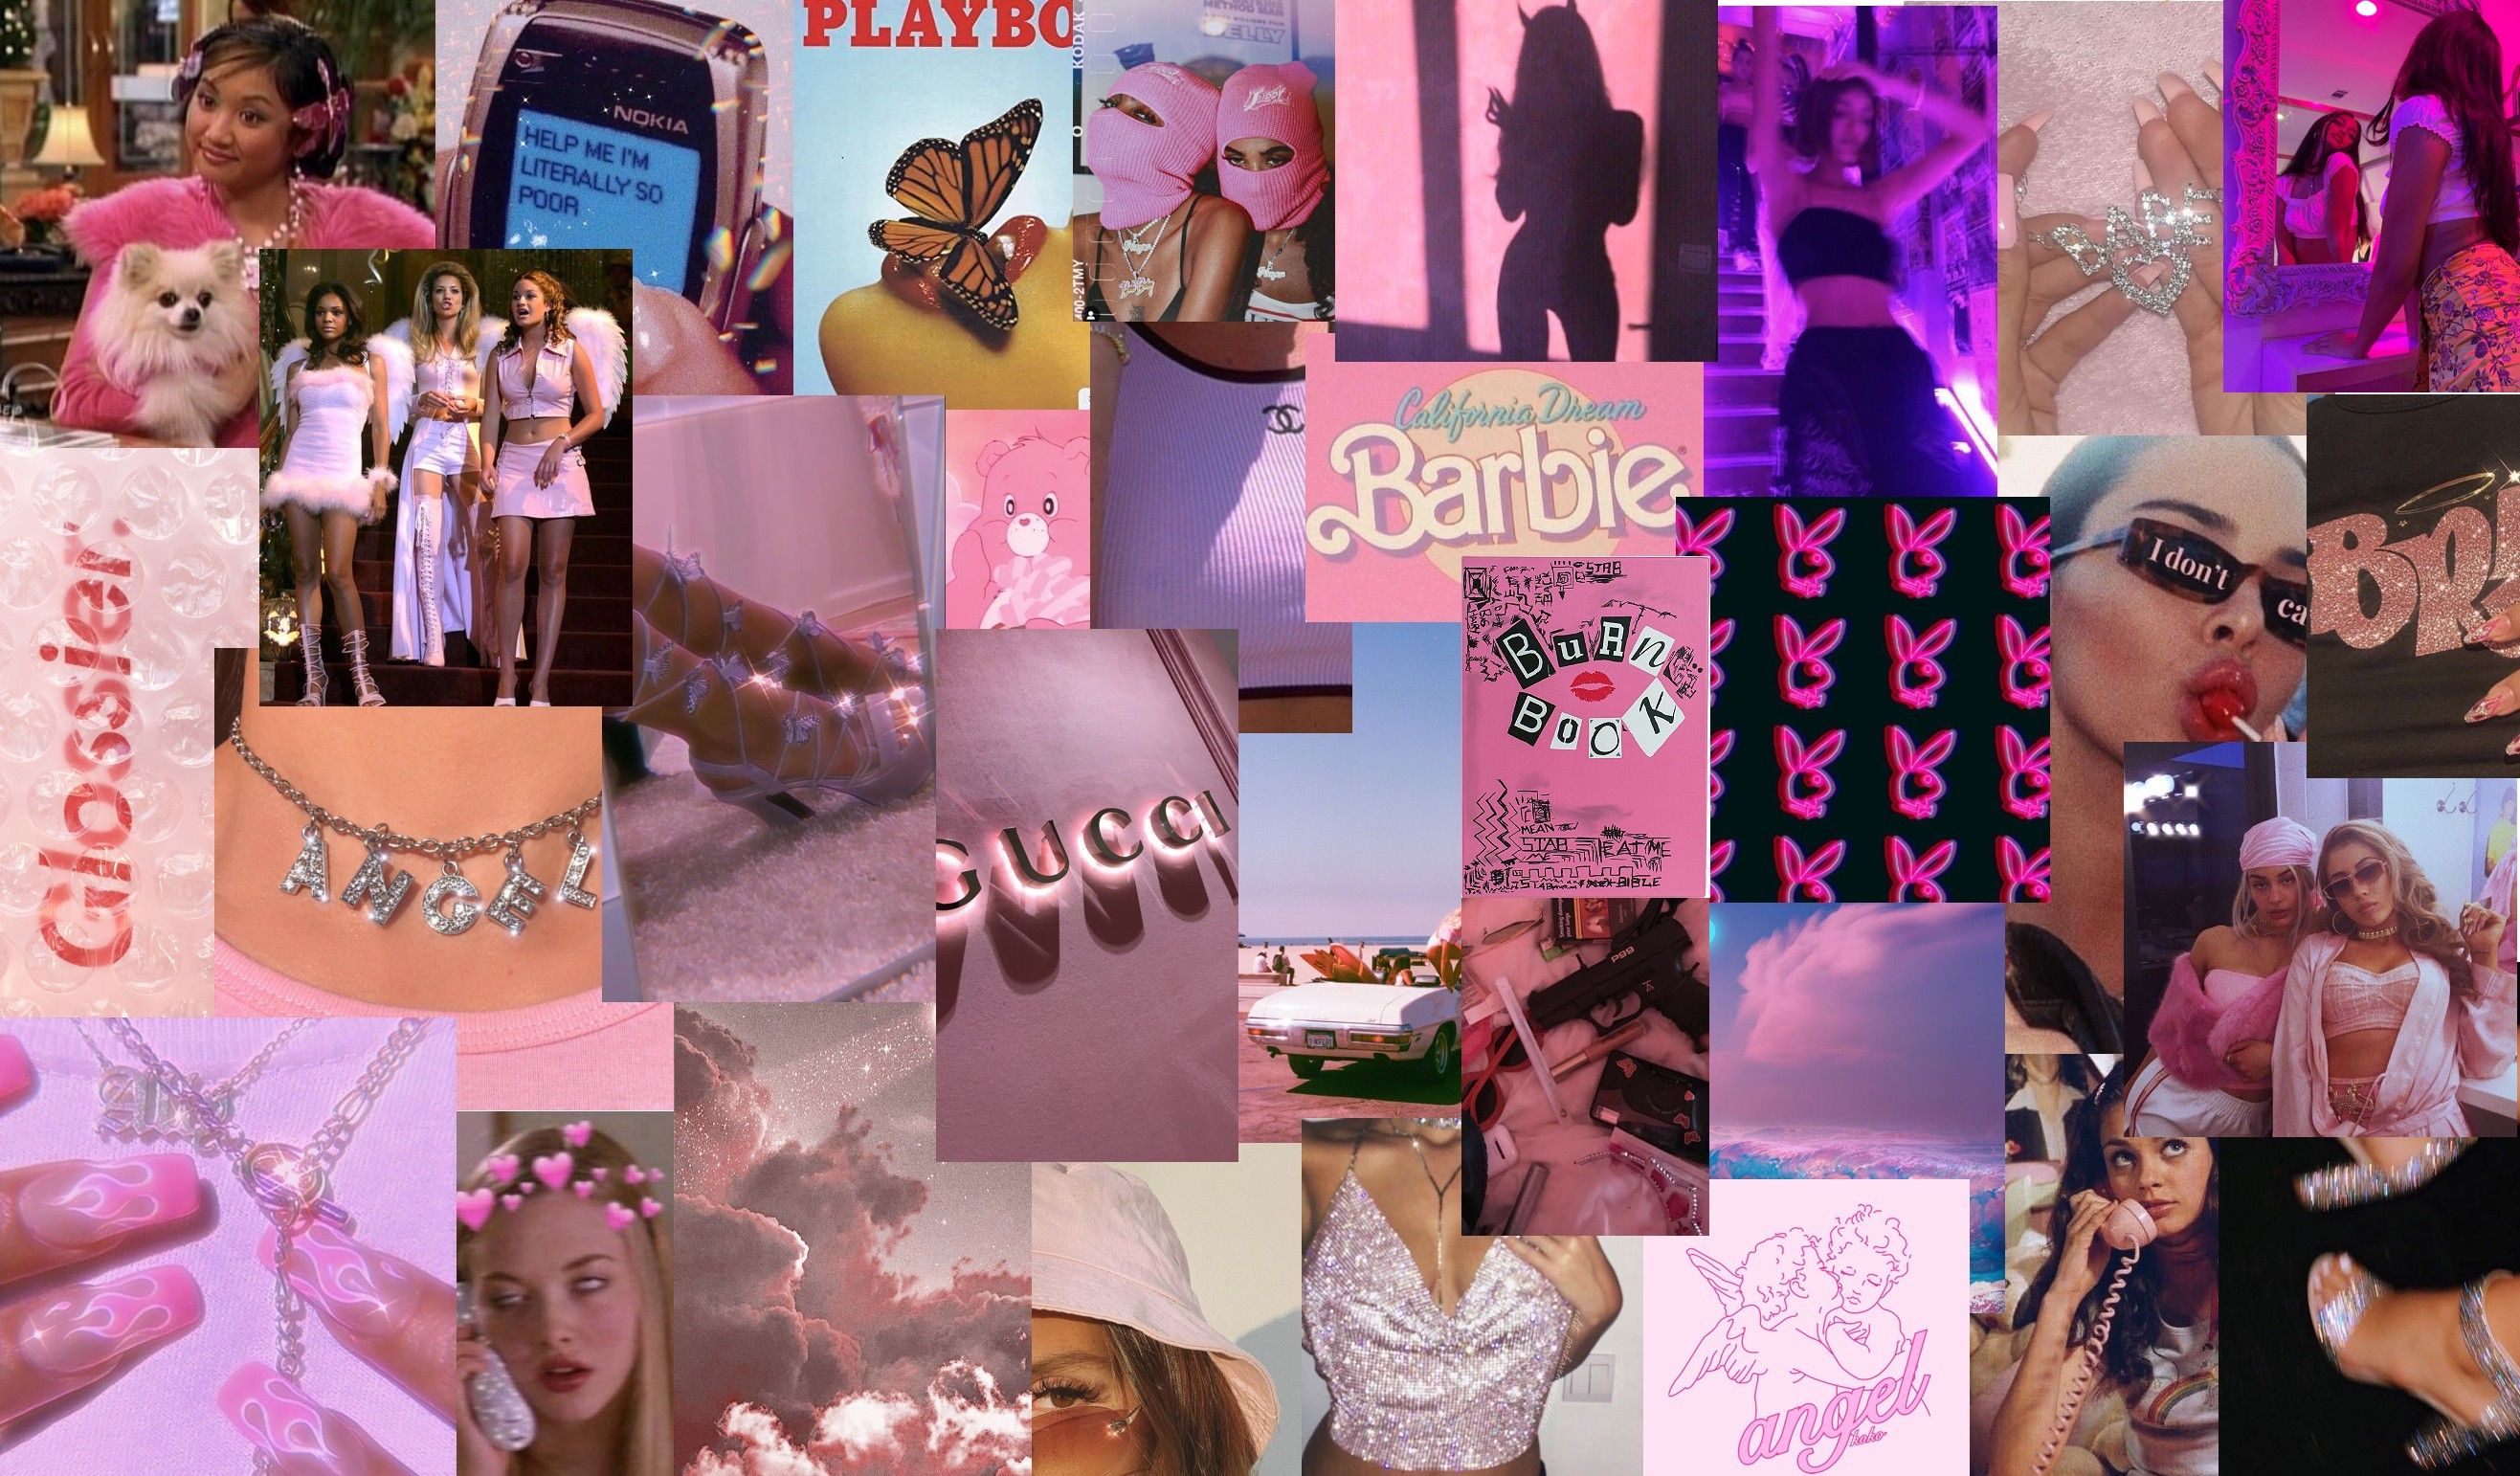 𝖕𝖎𝖓𝖐 𝖇𝖆𝖉𝖉𝖎𝖊 𝖜𝖆𝖑𝖑𝖕𝖆𝖕𝖊𝖗 In 2020 Pink Wallpaper Laptop Aesthetic Desktop Wallpaper Cute Laptop Wallpaper